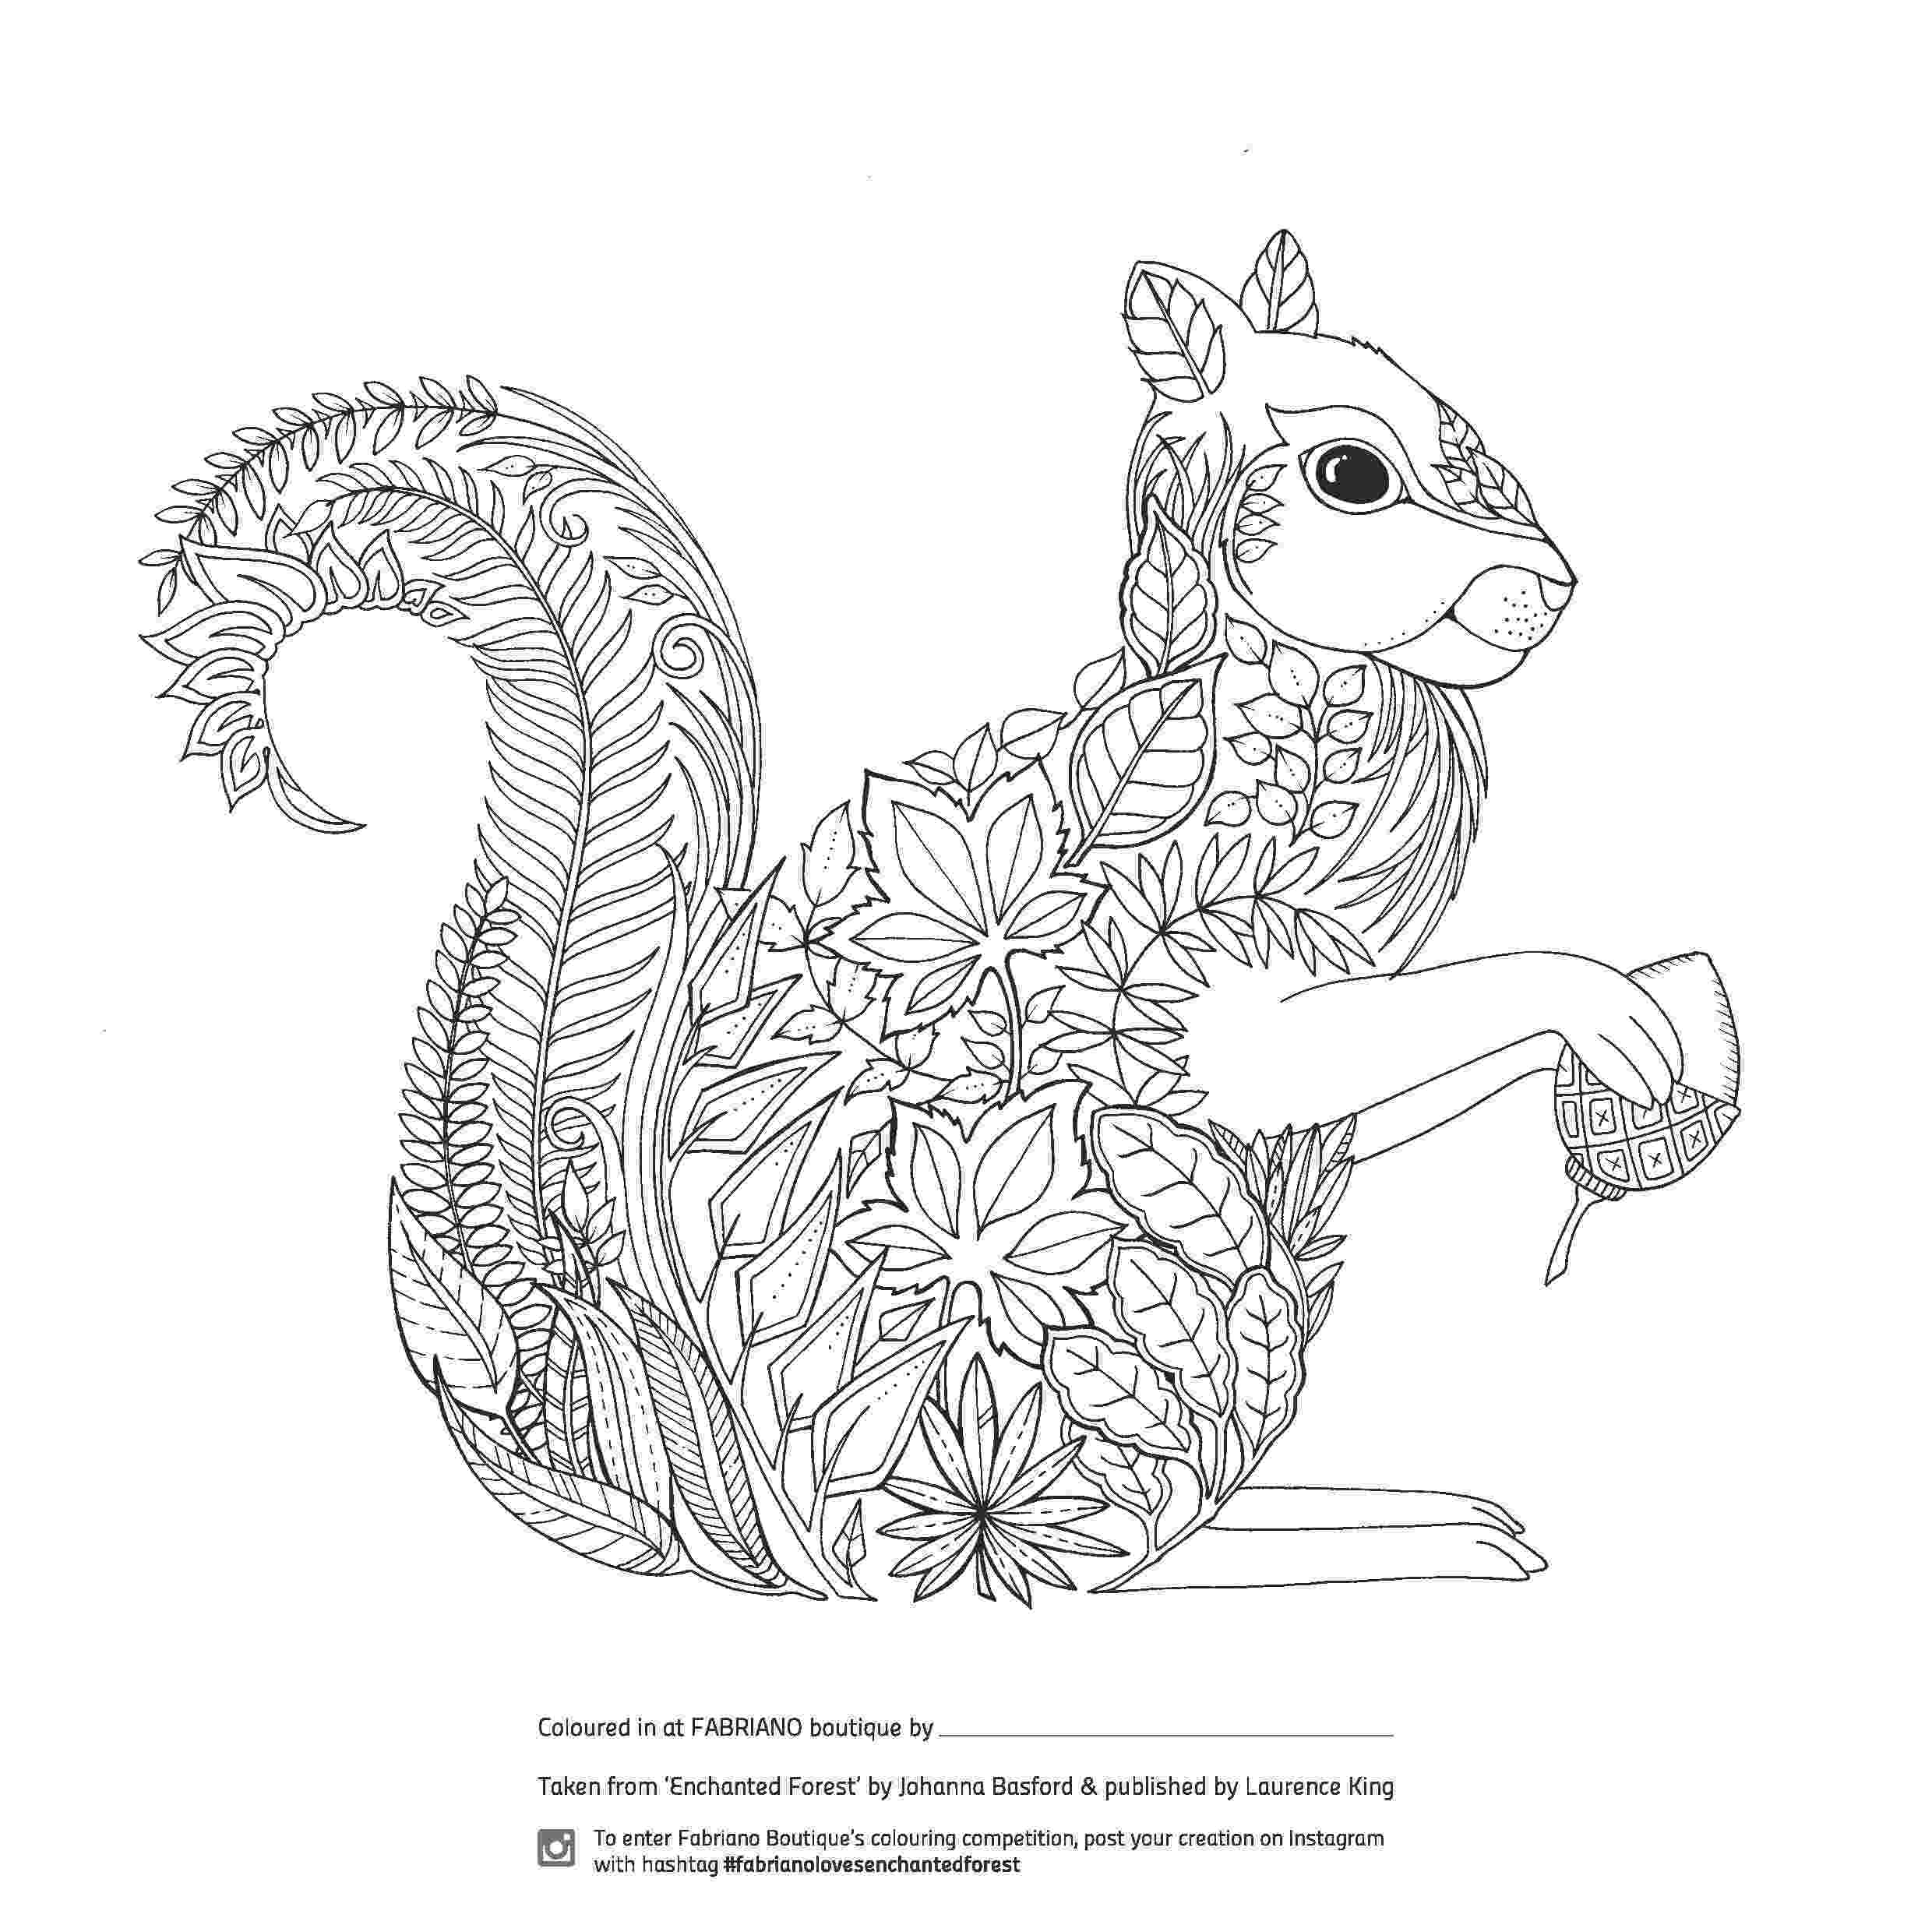 coloring pages pdf enchanted forest colouring competition at fabriano pages coloring pdf